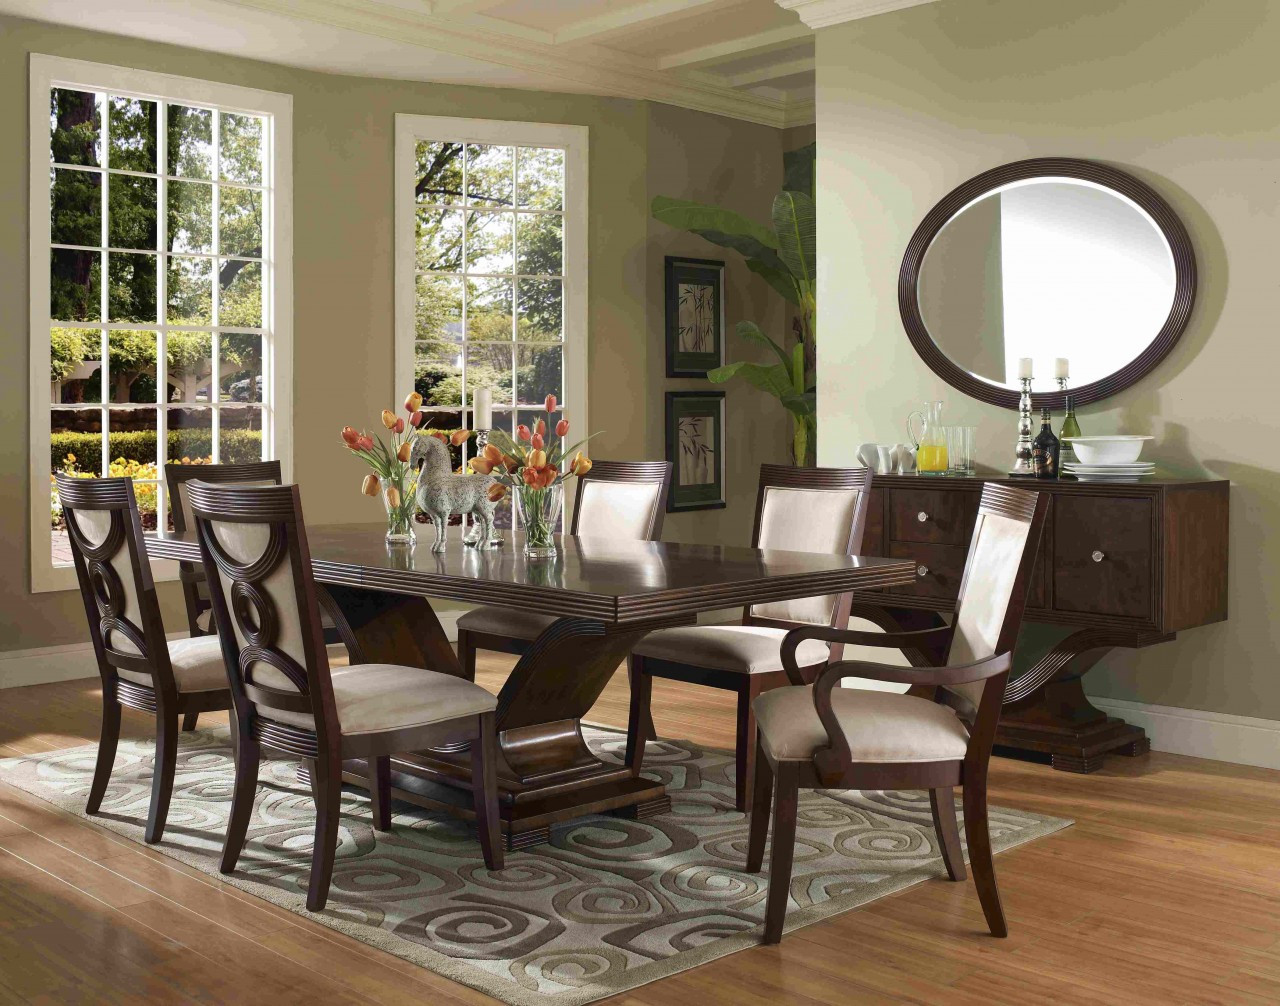 Best ideas about Dining Room Set . Save or Pin Formal Dining Room Sets with Specific Details Now.